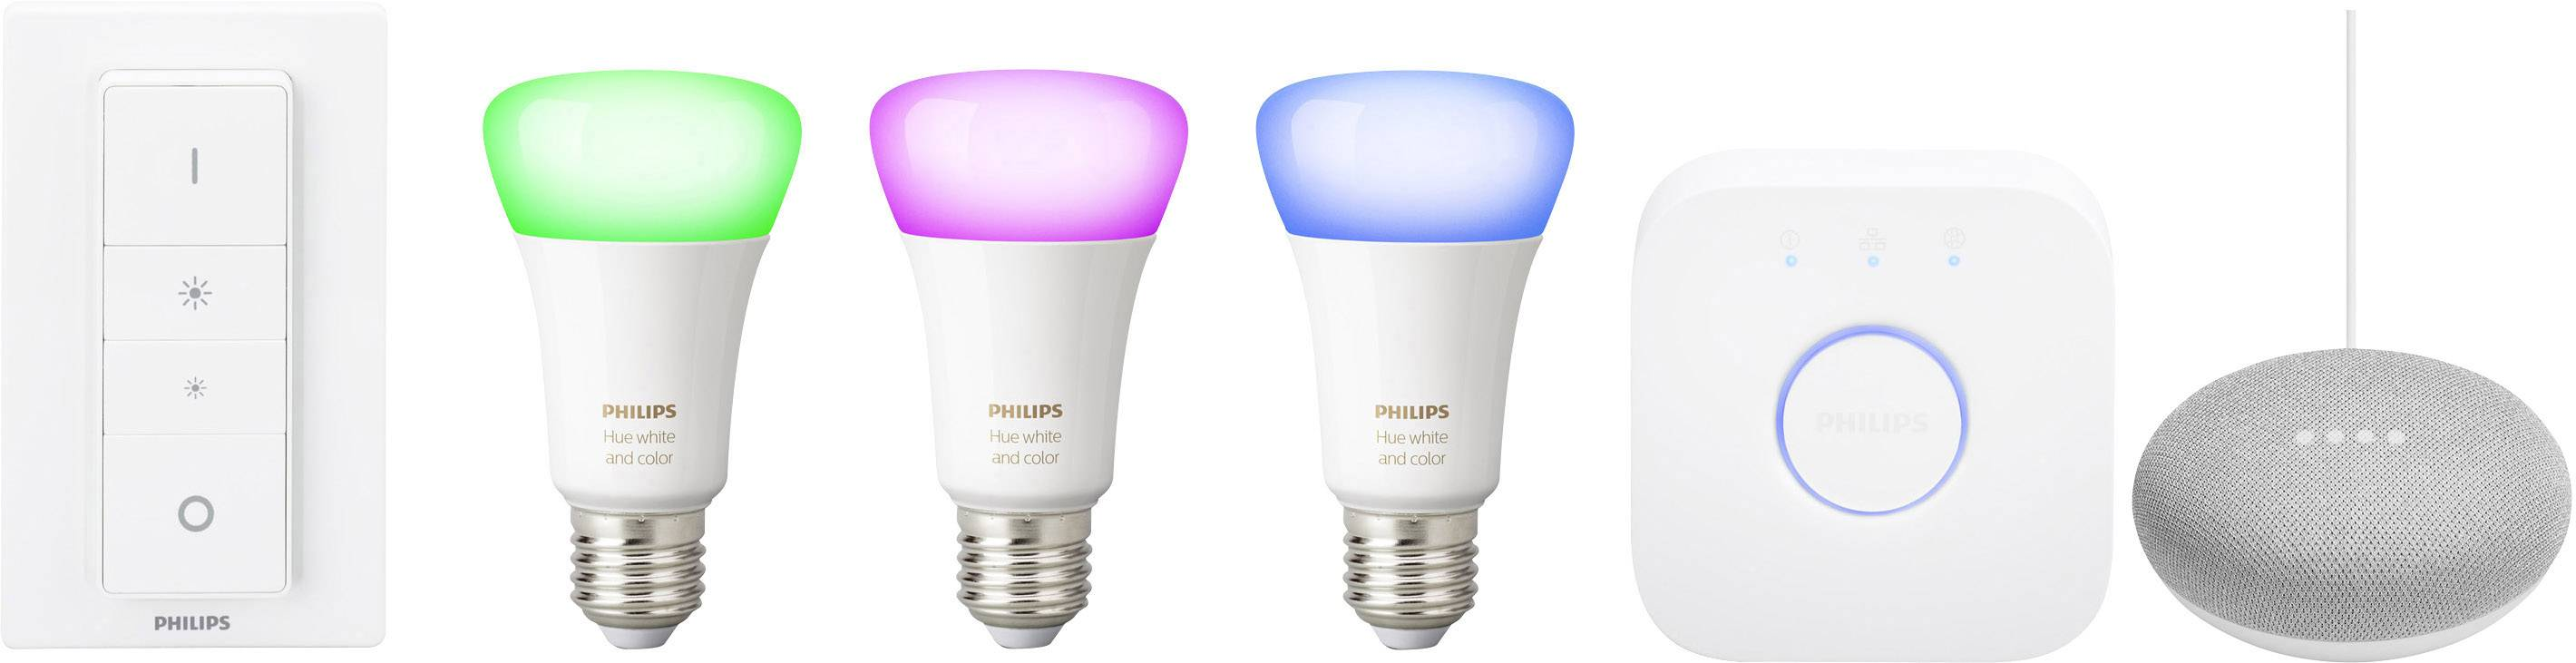 Philips Hue Starter Kit E27 Philips Lightinghuestarter Kite2710 Wrgbw Google Home Mini